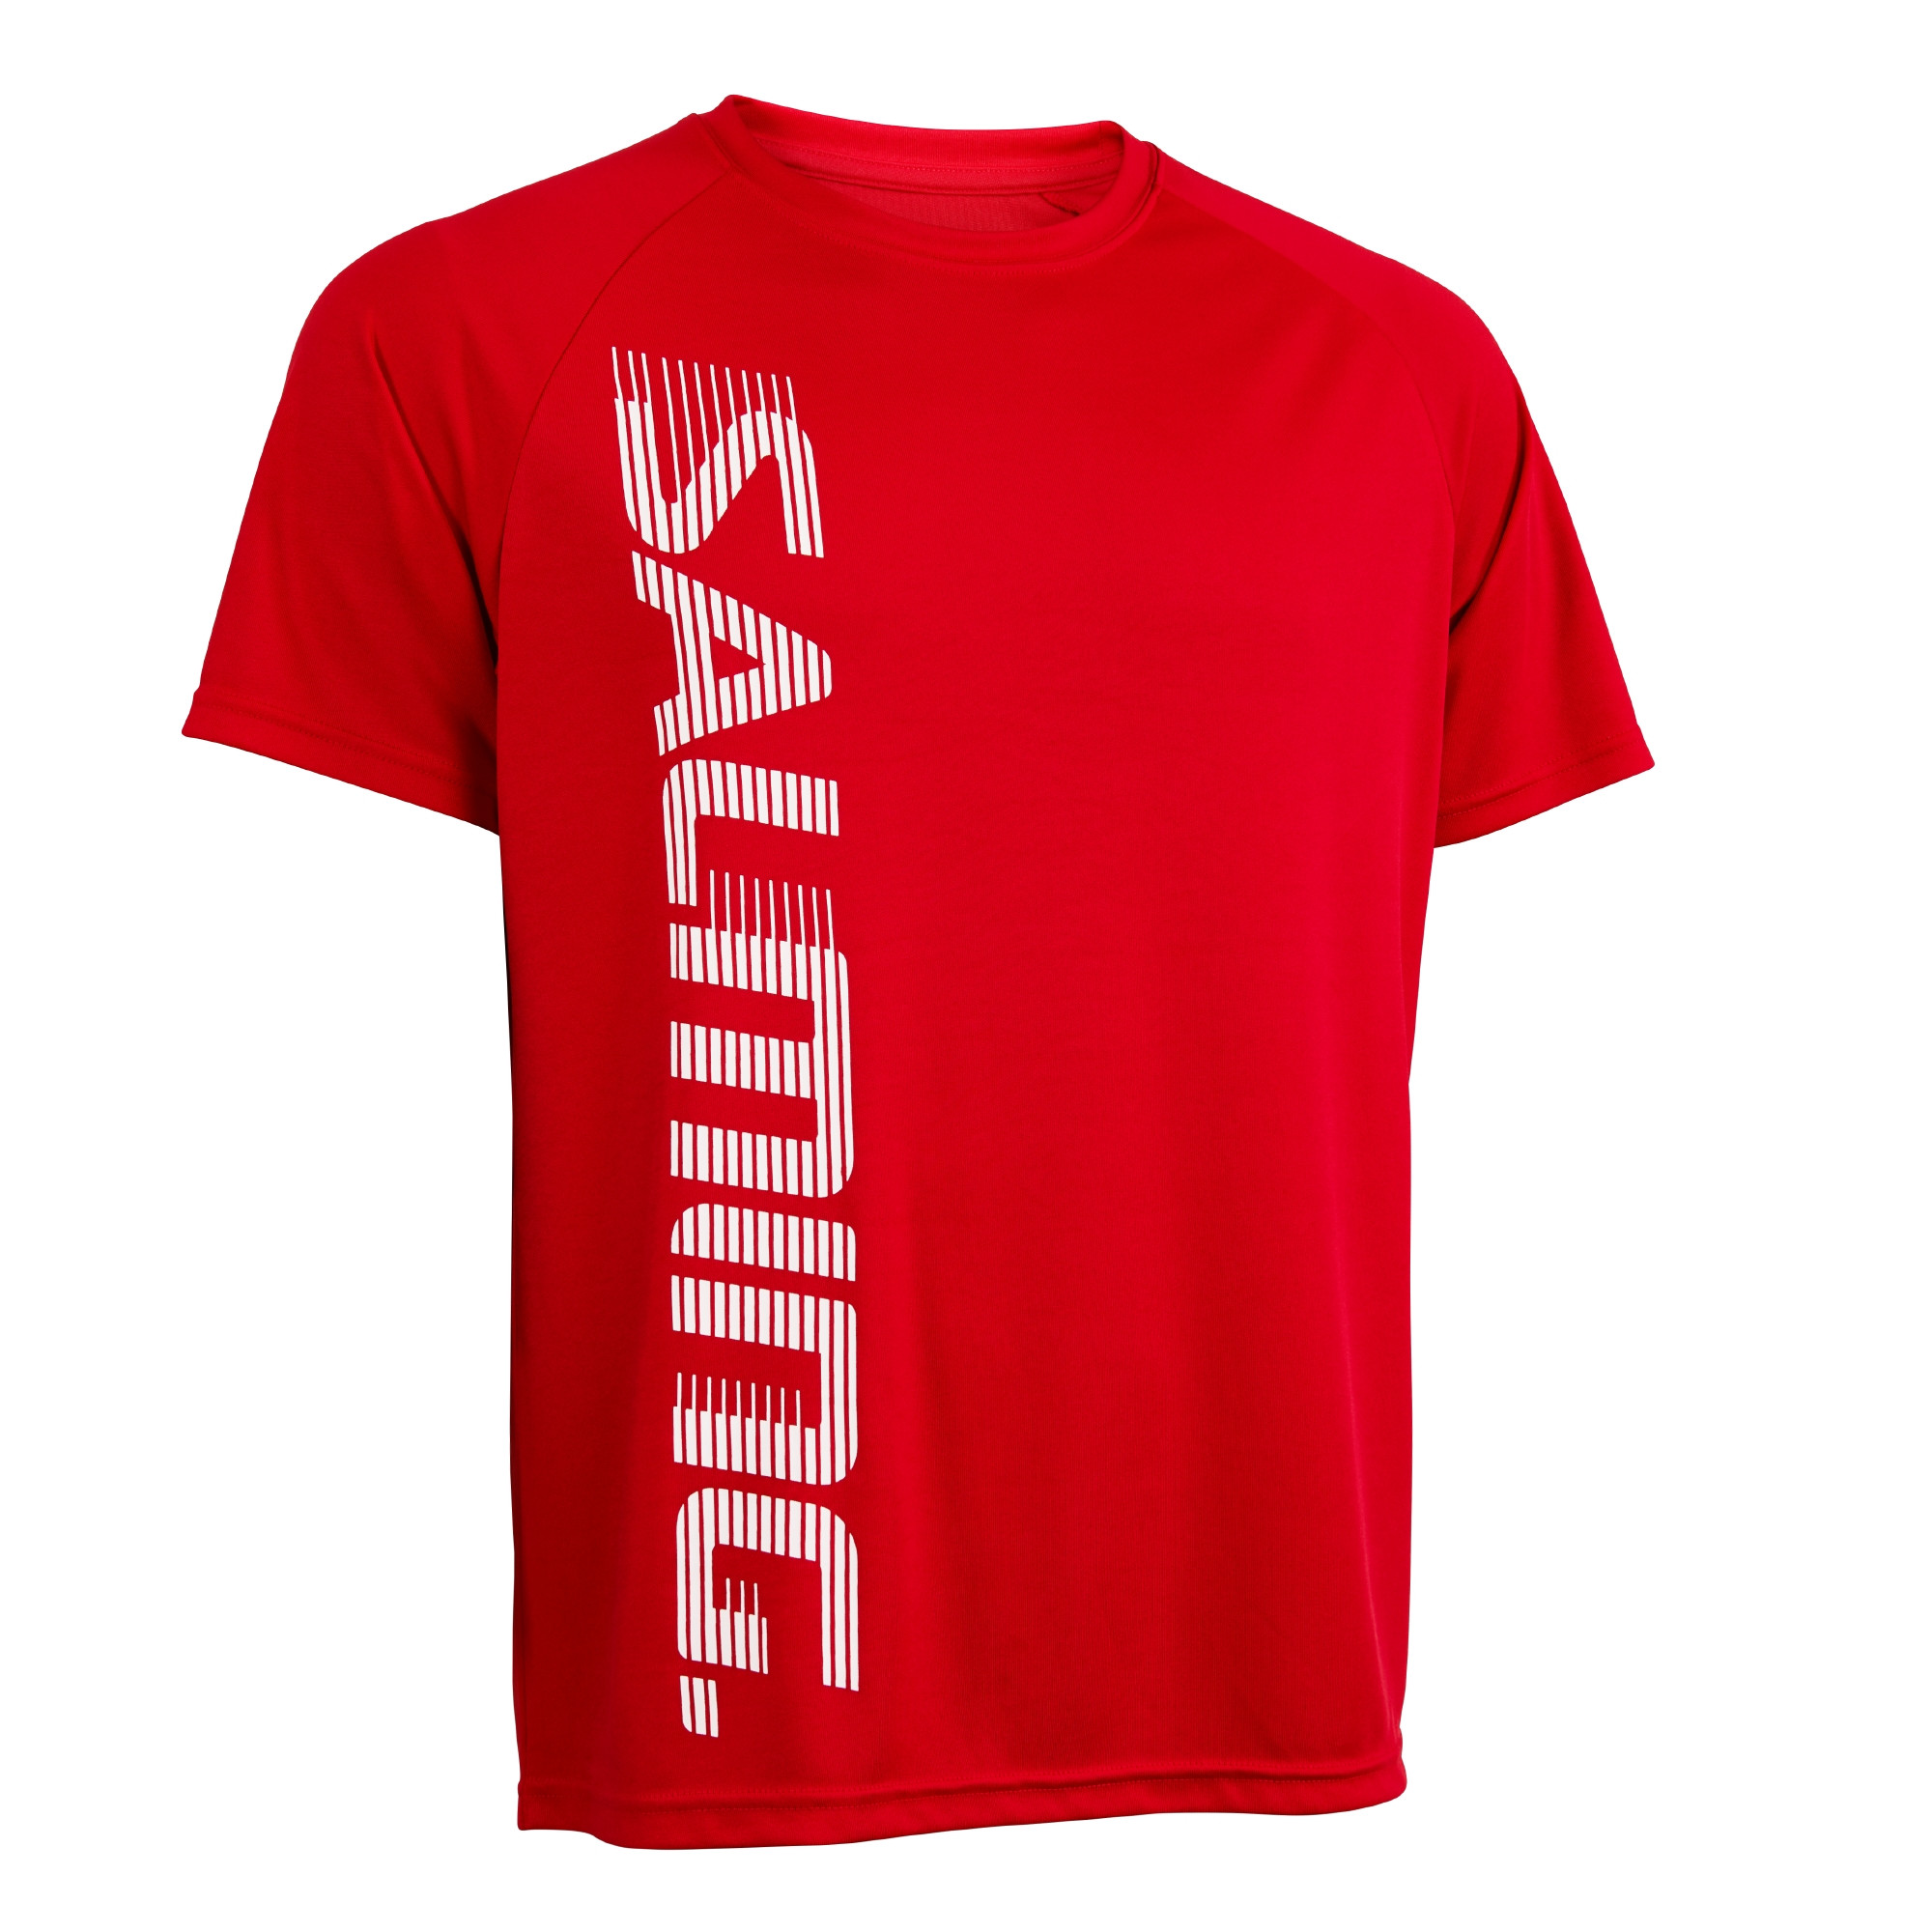 Salming Training Tee 2.0 XL, červená